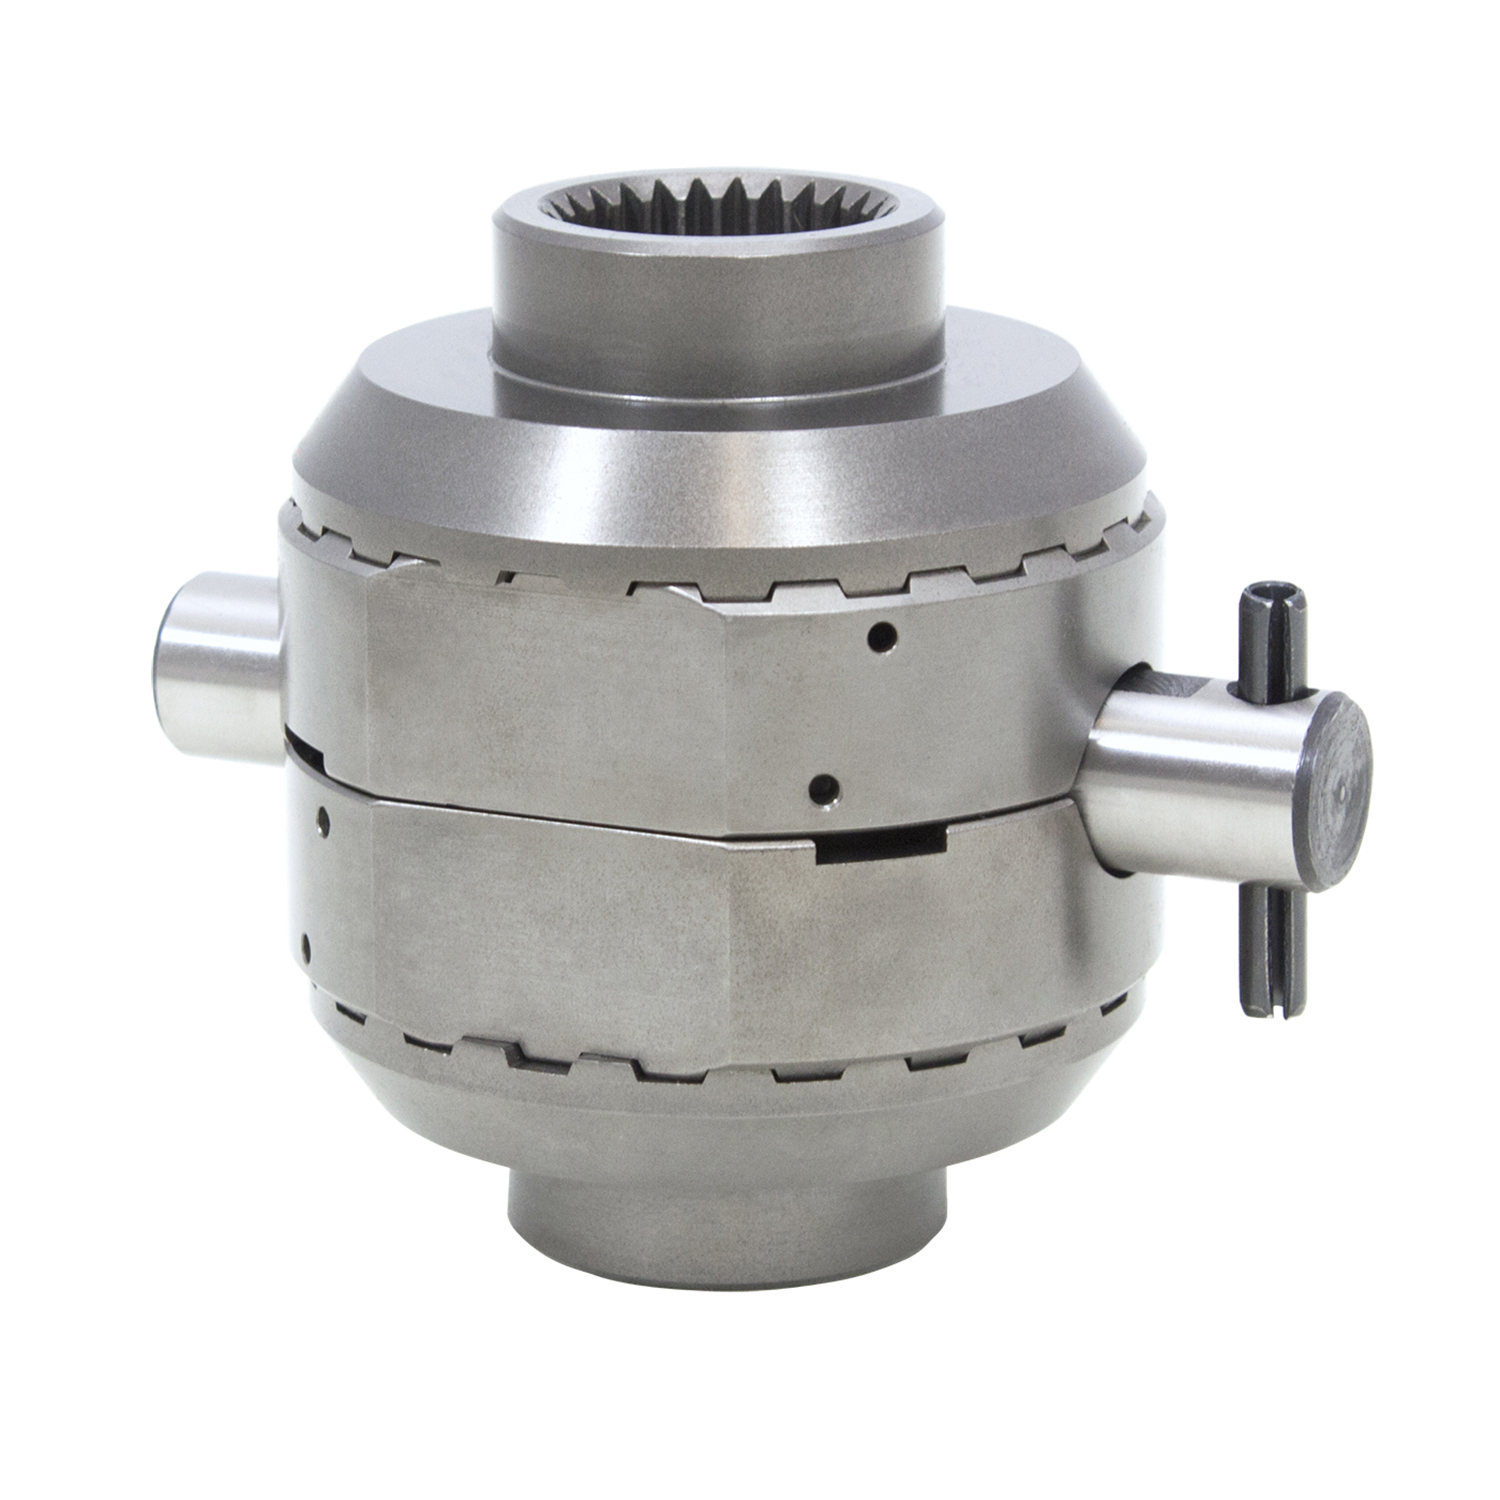 SL D30-27 - Spartan Locker for Dana 30 differential with 27 spline axles, includes heavy-duty cross pin shaft